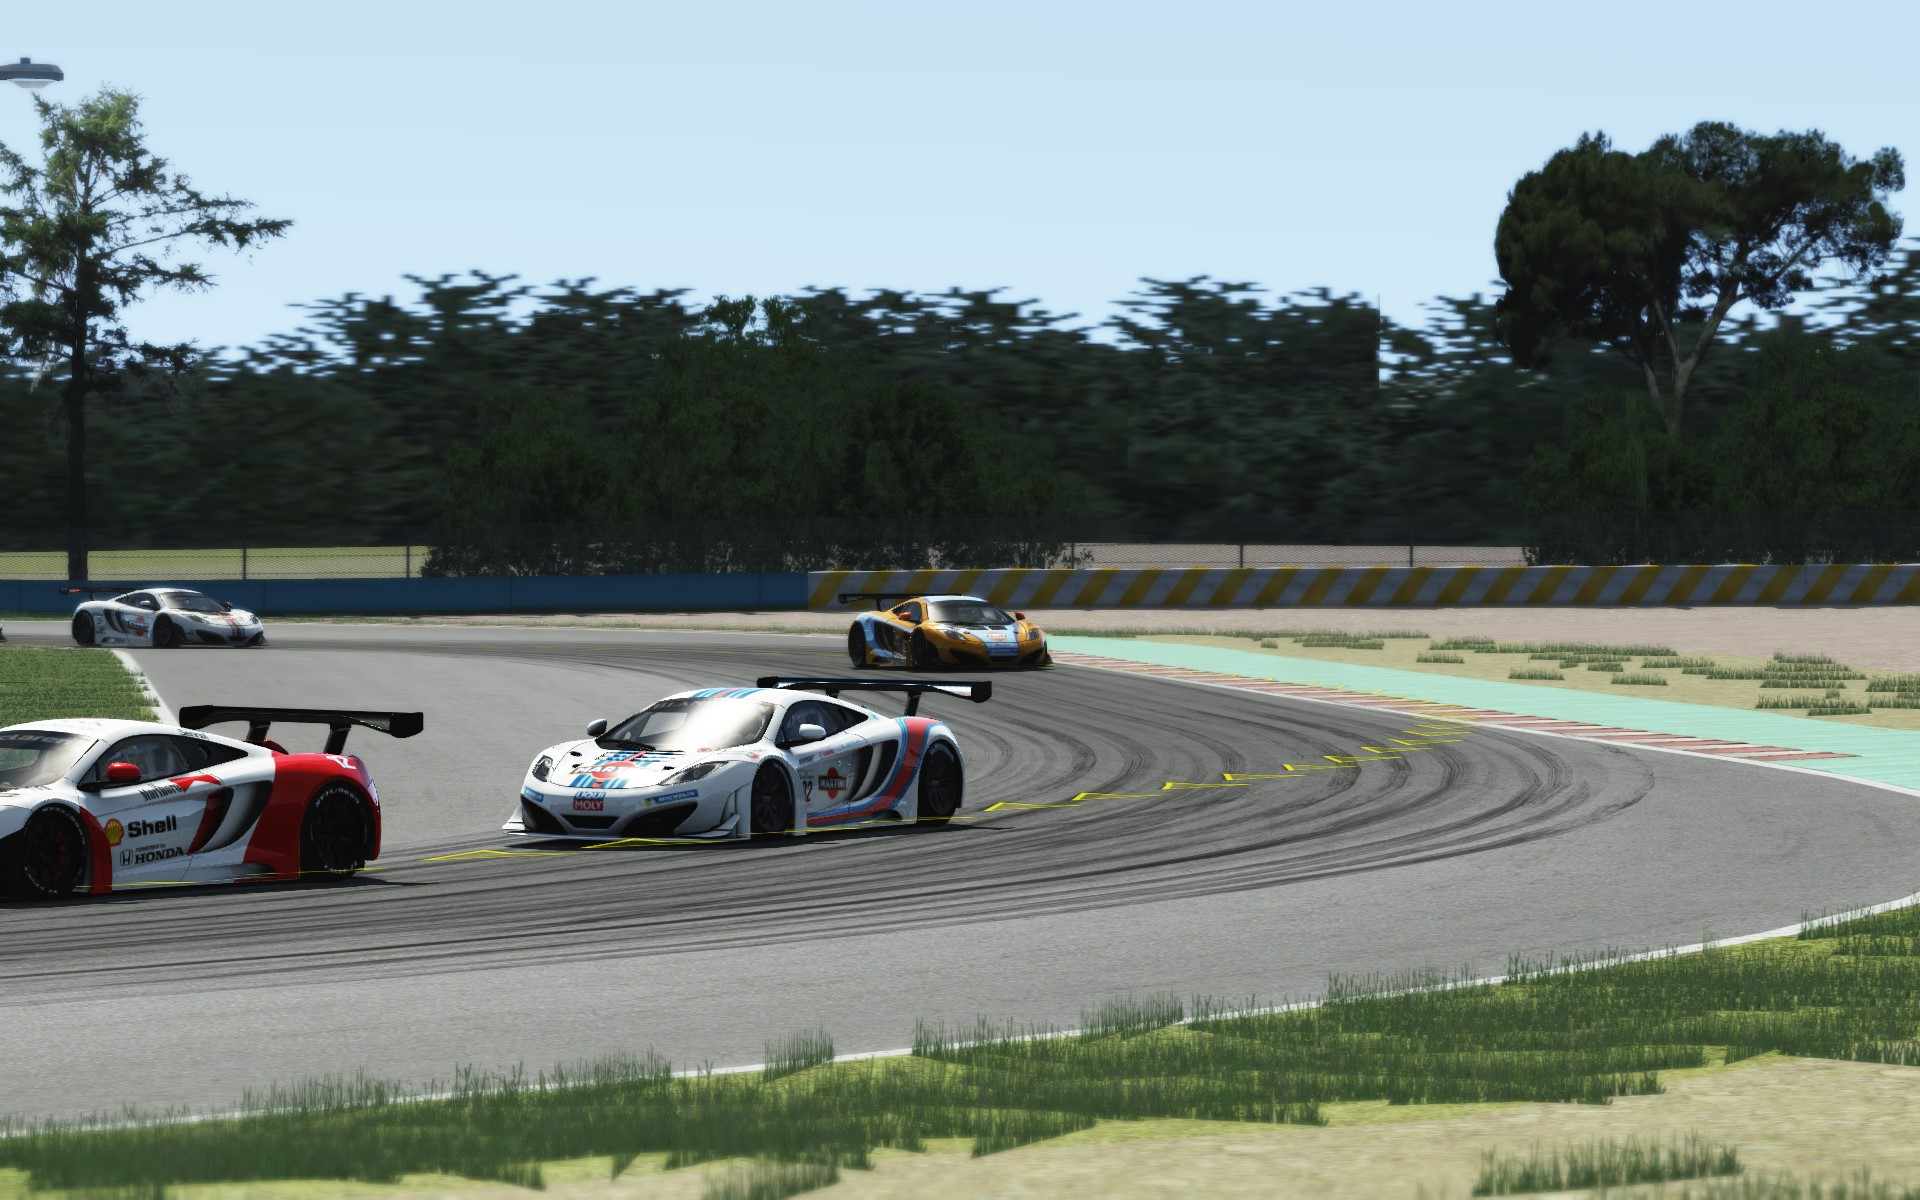 Screenshot_mclaren_mp412c_gt3_sentul_circuit_30-7-115-12-43-8.jpg